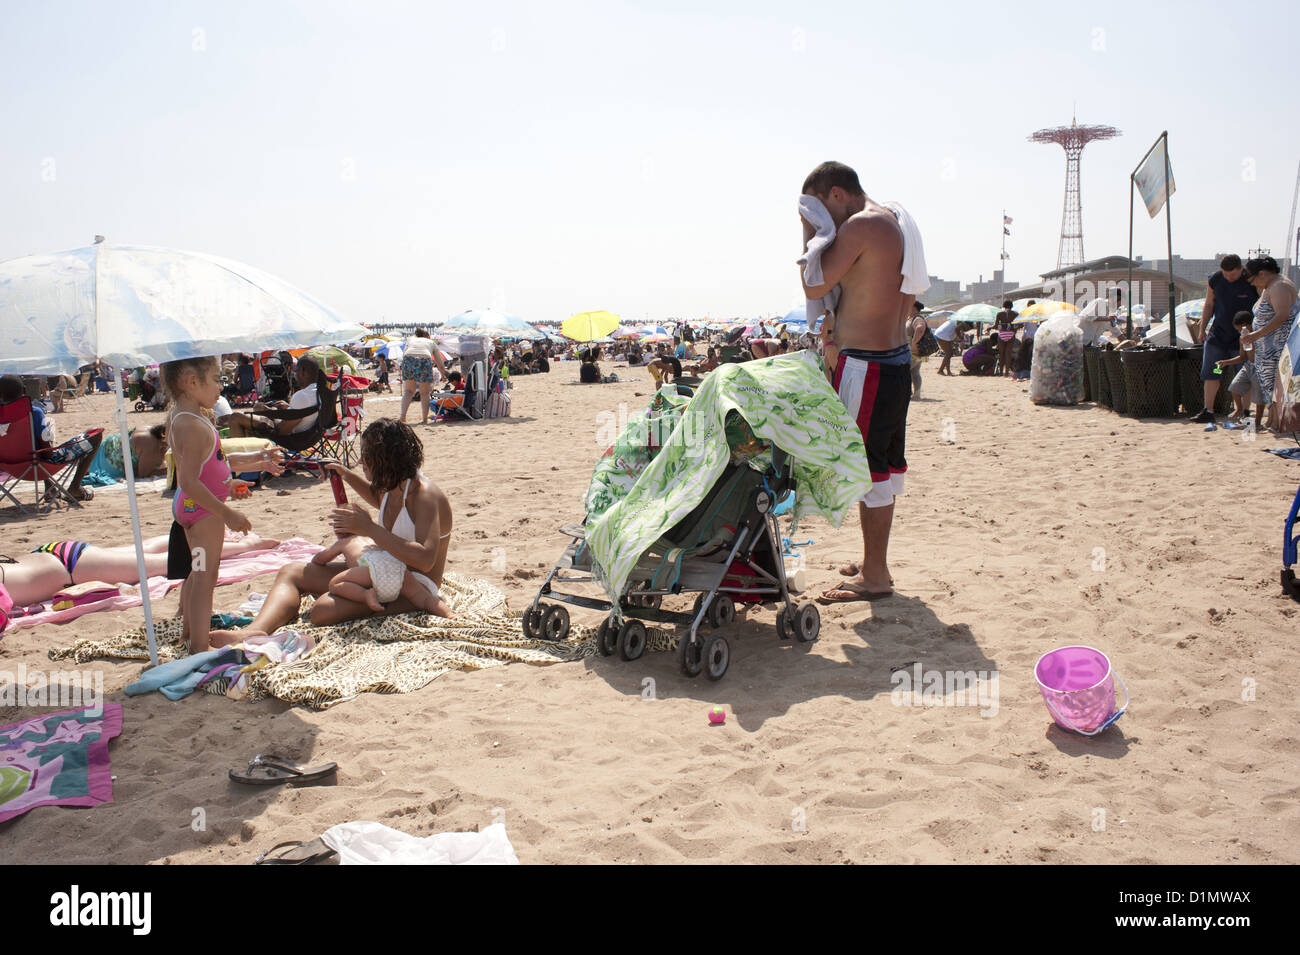 Fourth of July at Coney Island, 2012. - Stock Image